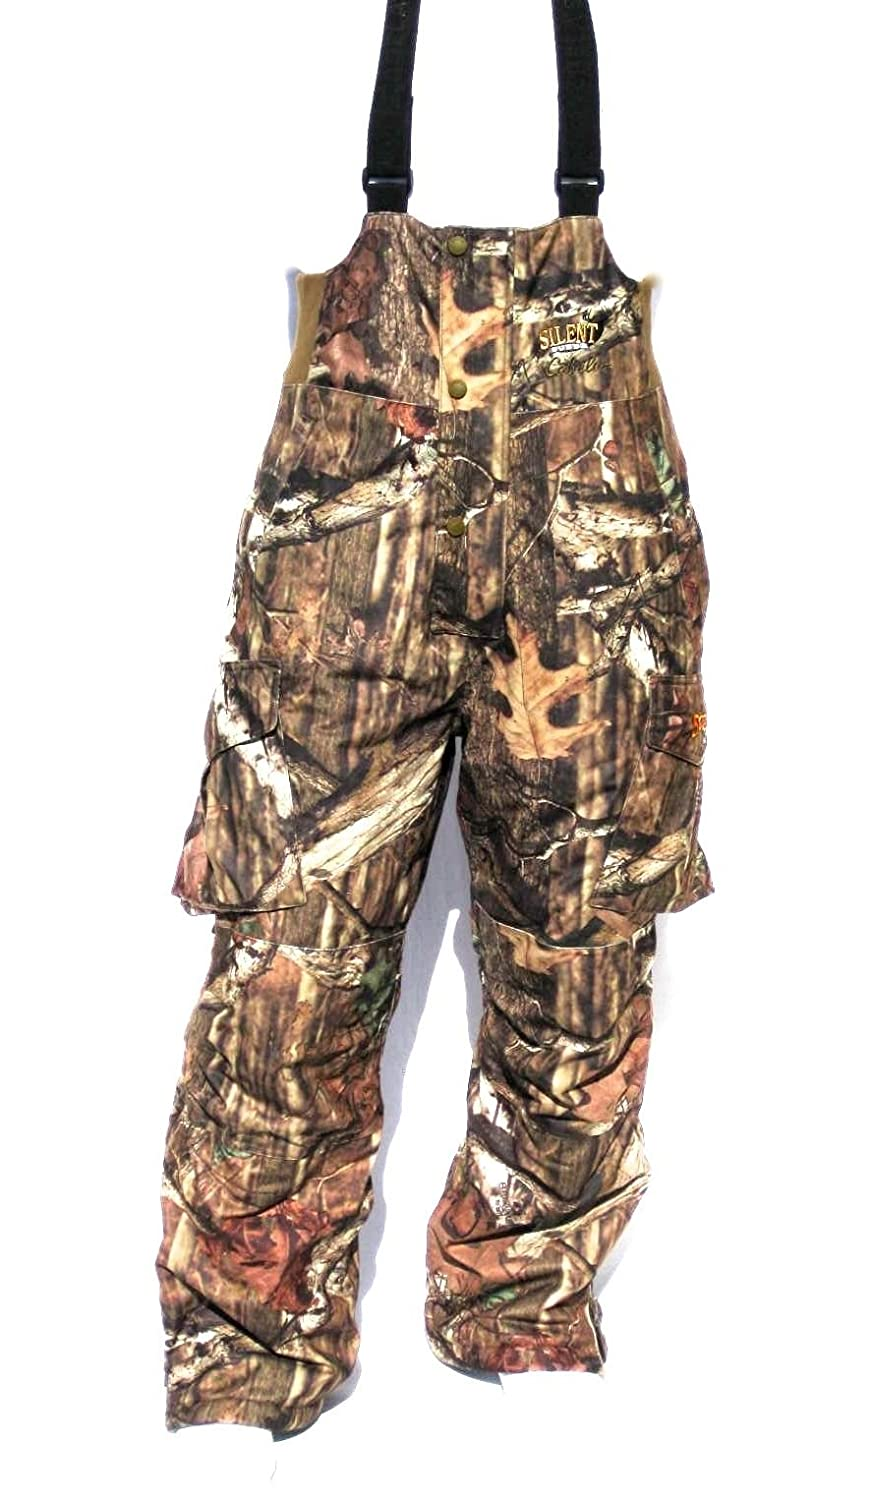 358eb2c92b8ee Cabela's SCENT-LOK Silent-Suede Dry-Plus Mossy Oak INFINITY Hunting Pants  BIBS (Large): Amazon.ca: Sports & Outdoors